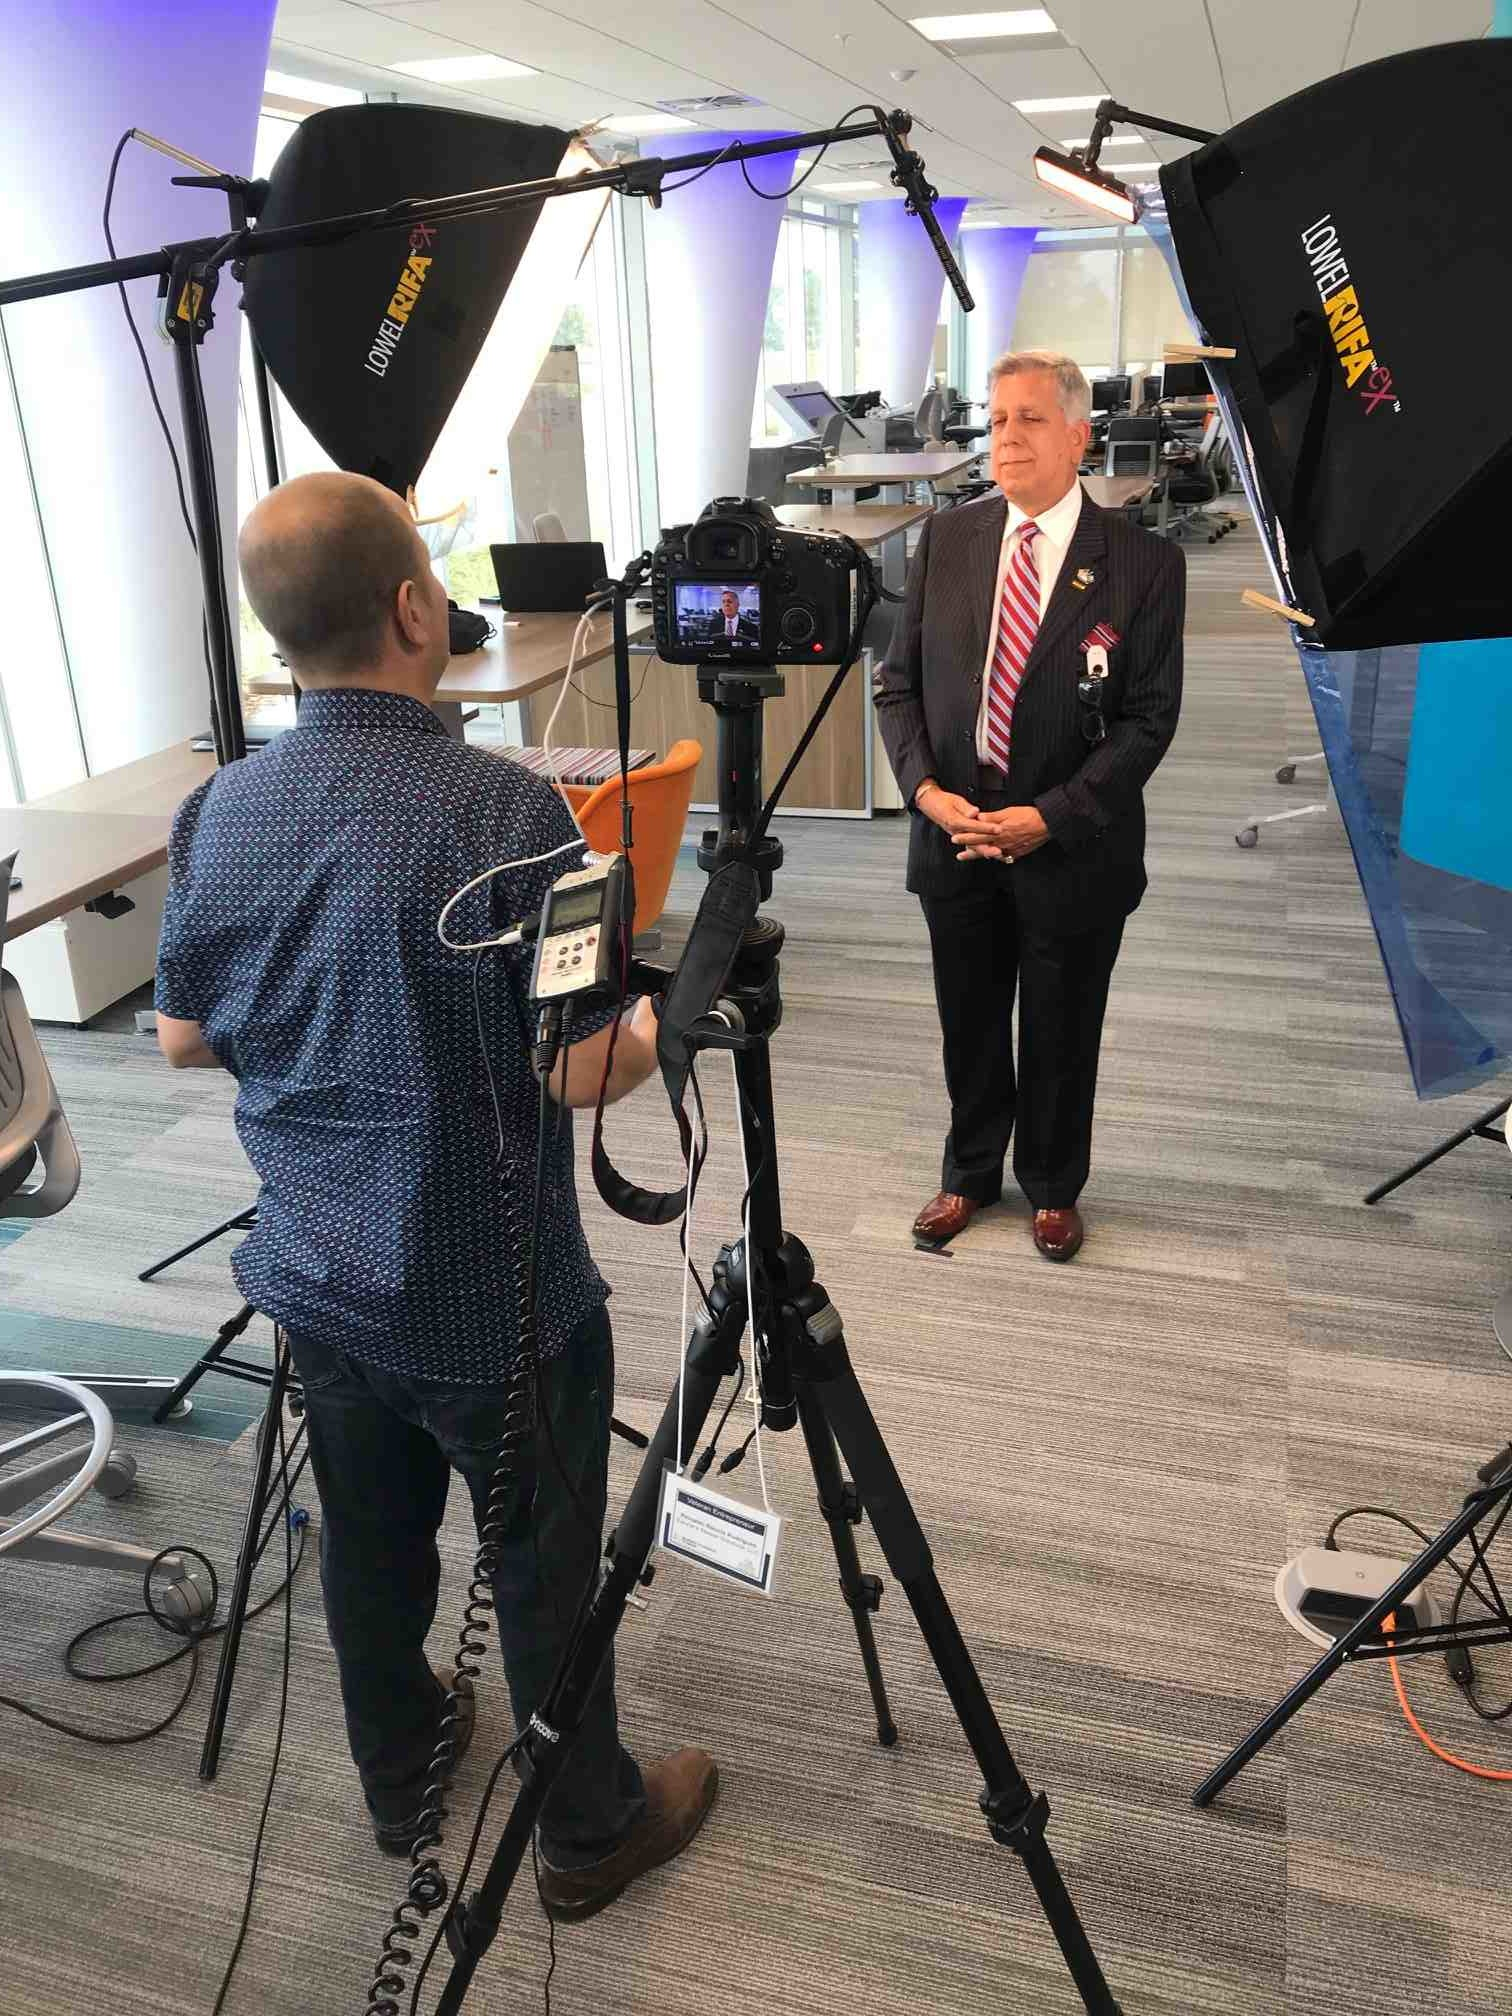 Whitney Media Productions videotaping at the Guidewell Innovation Center in Lake Nona for UCF